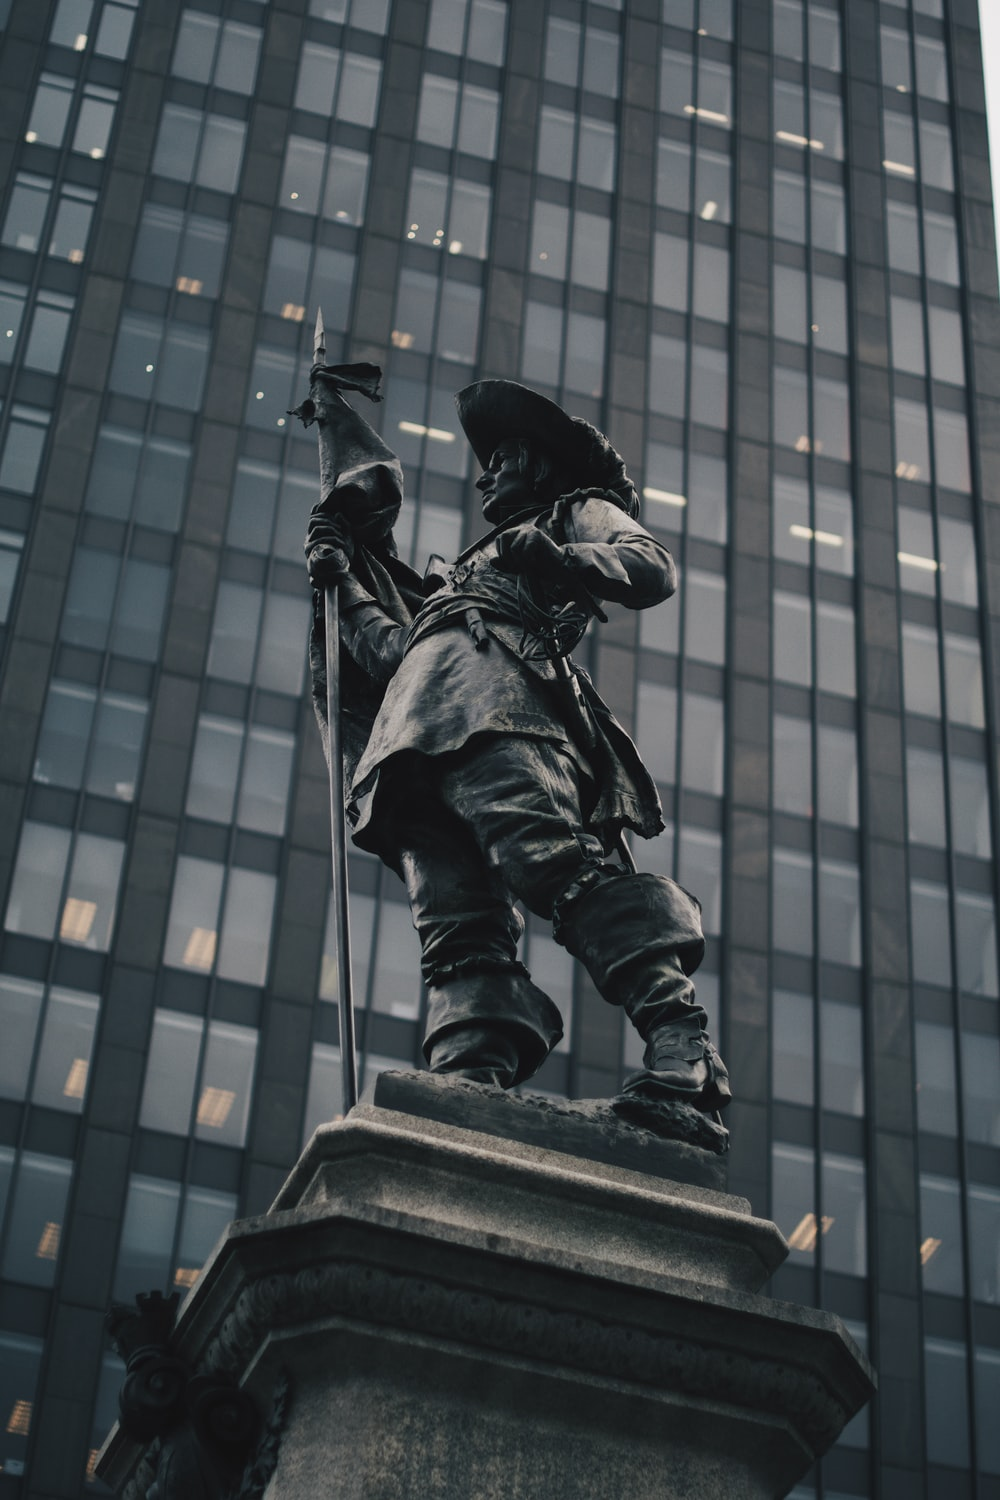 standing man holding spear statue